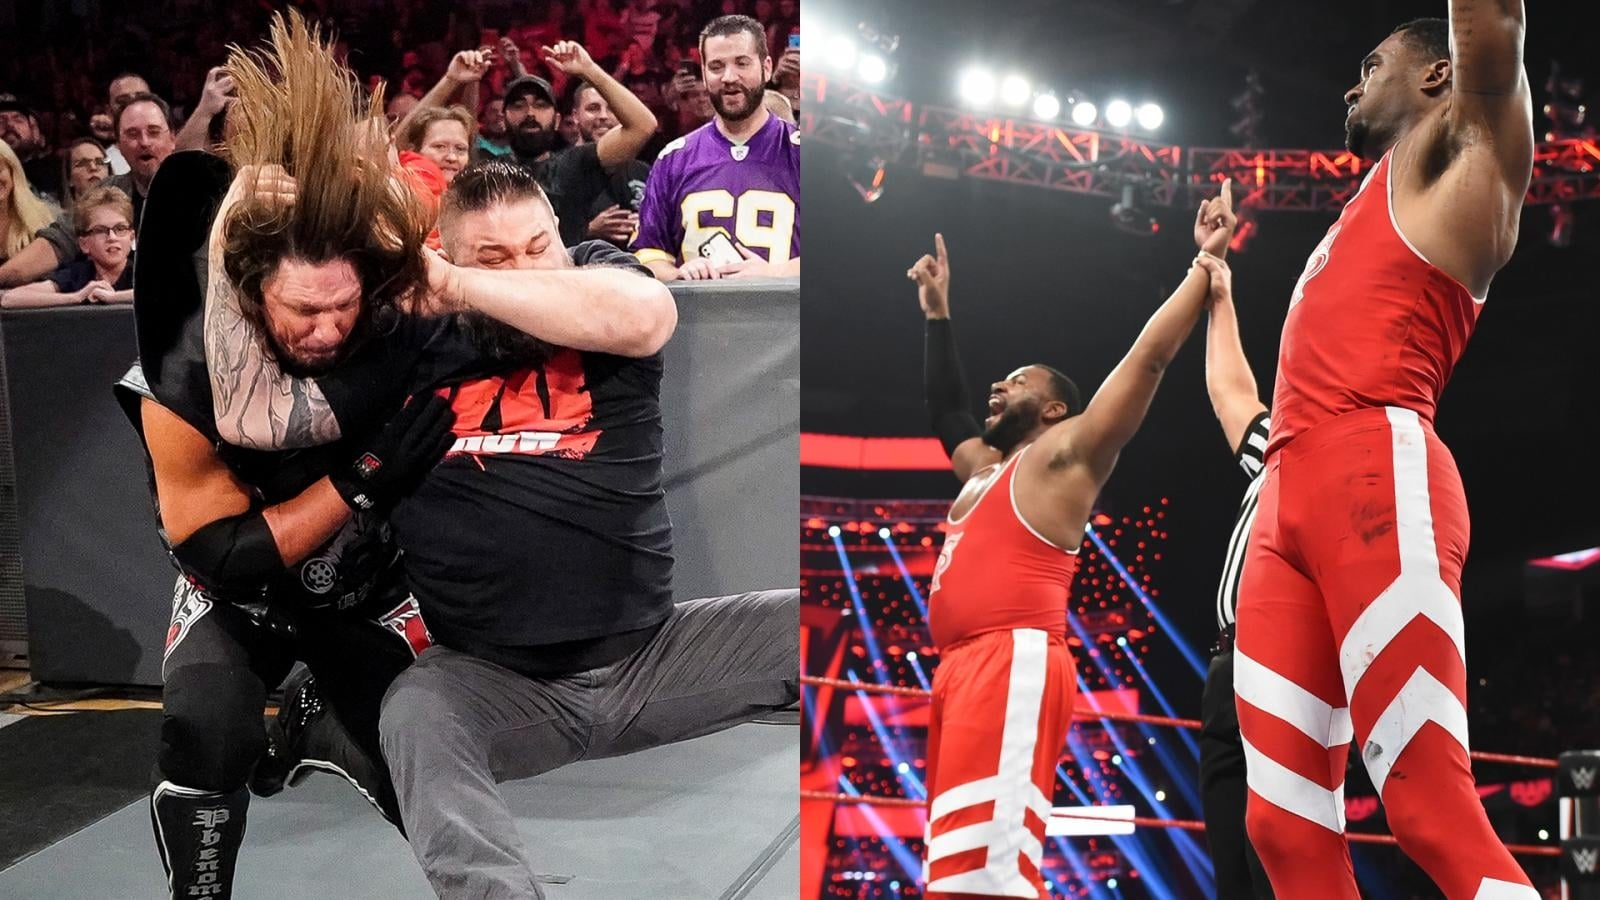 WWE Raw Season 27 :Episode 42  October 21, 2019 (Cleveland, OH)